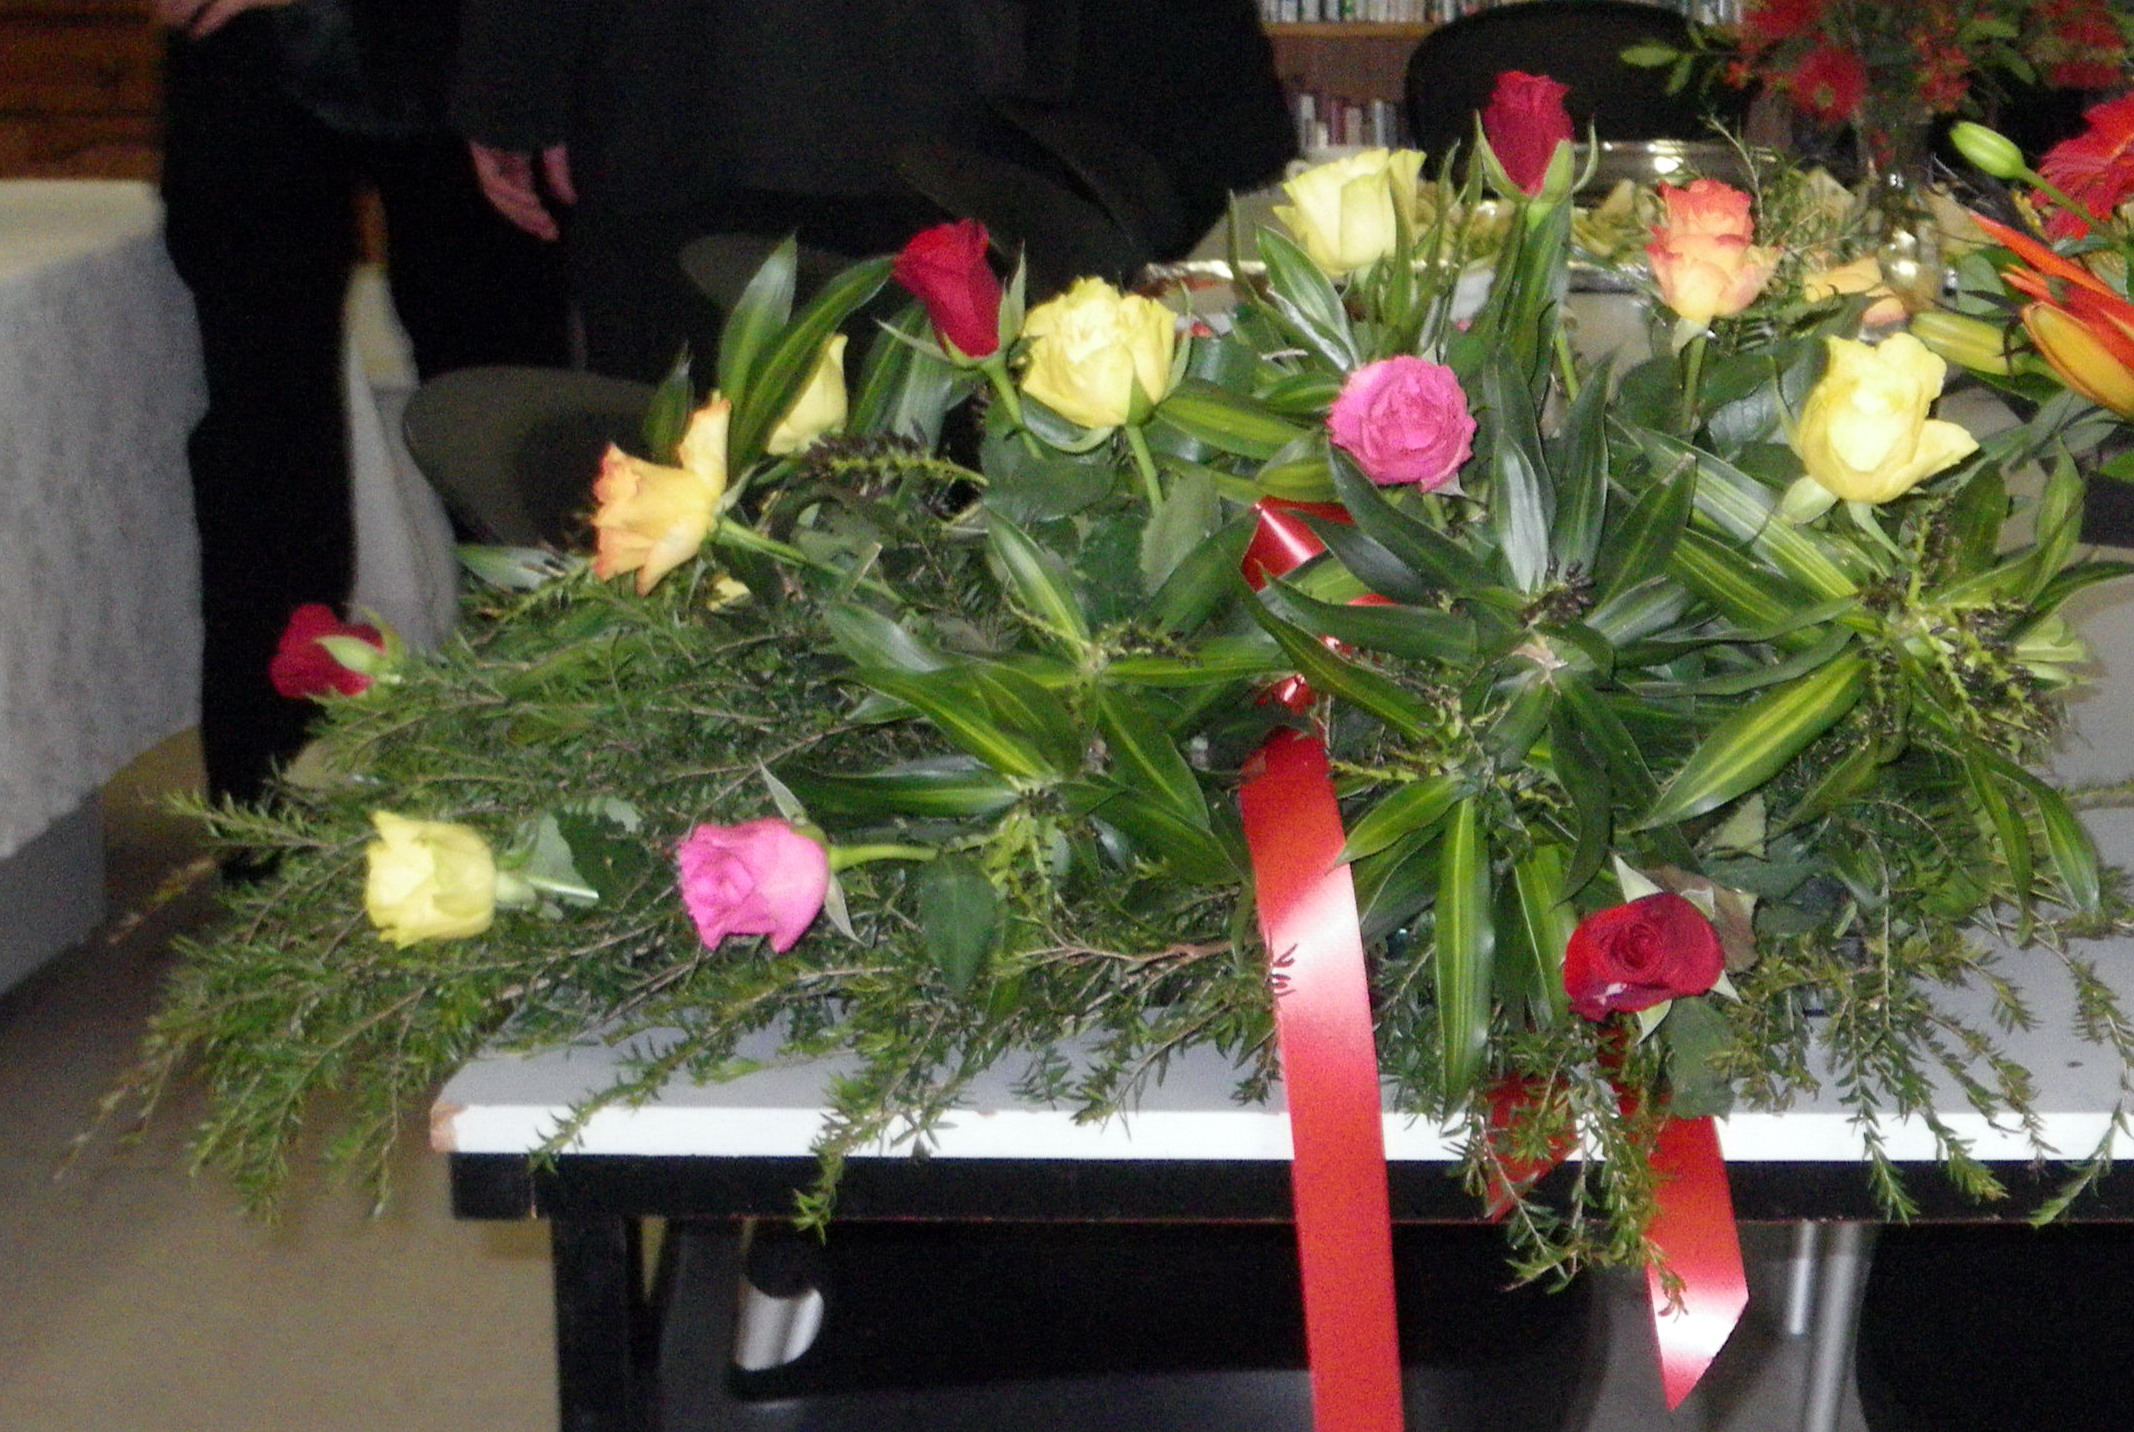 The Funeral Flowers Gabe Feathers Mcgee